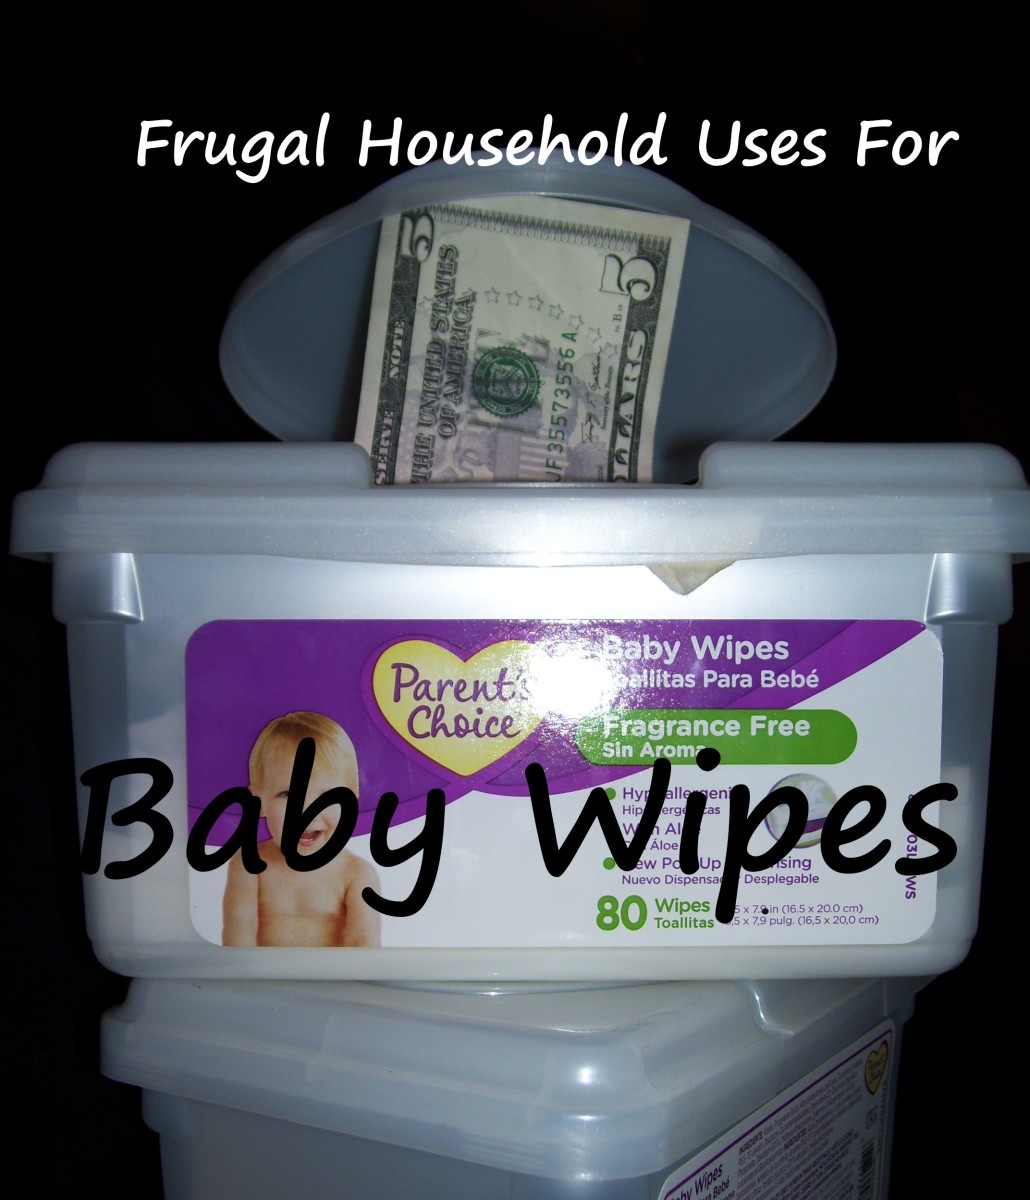 Household Uses For Storebought And Homemade Baby Wipes